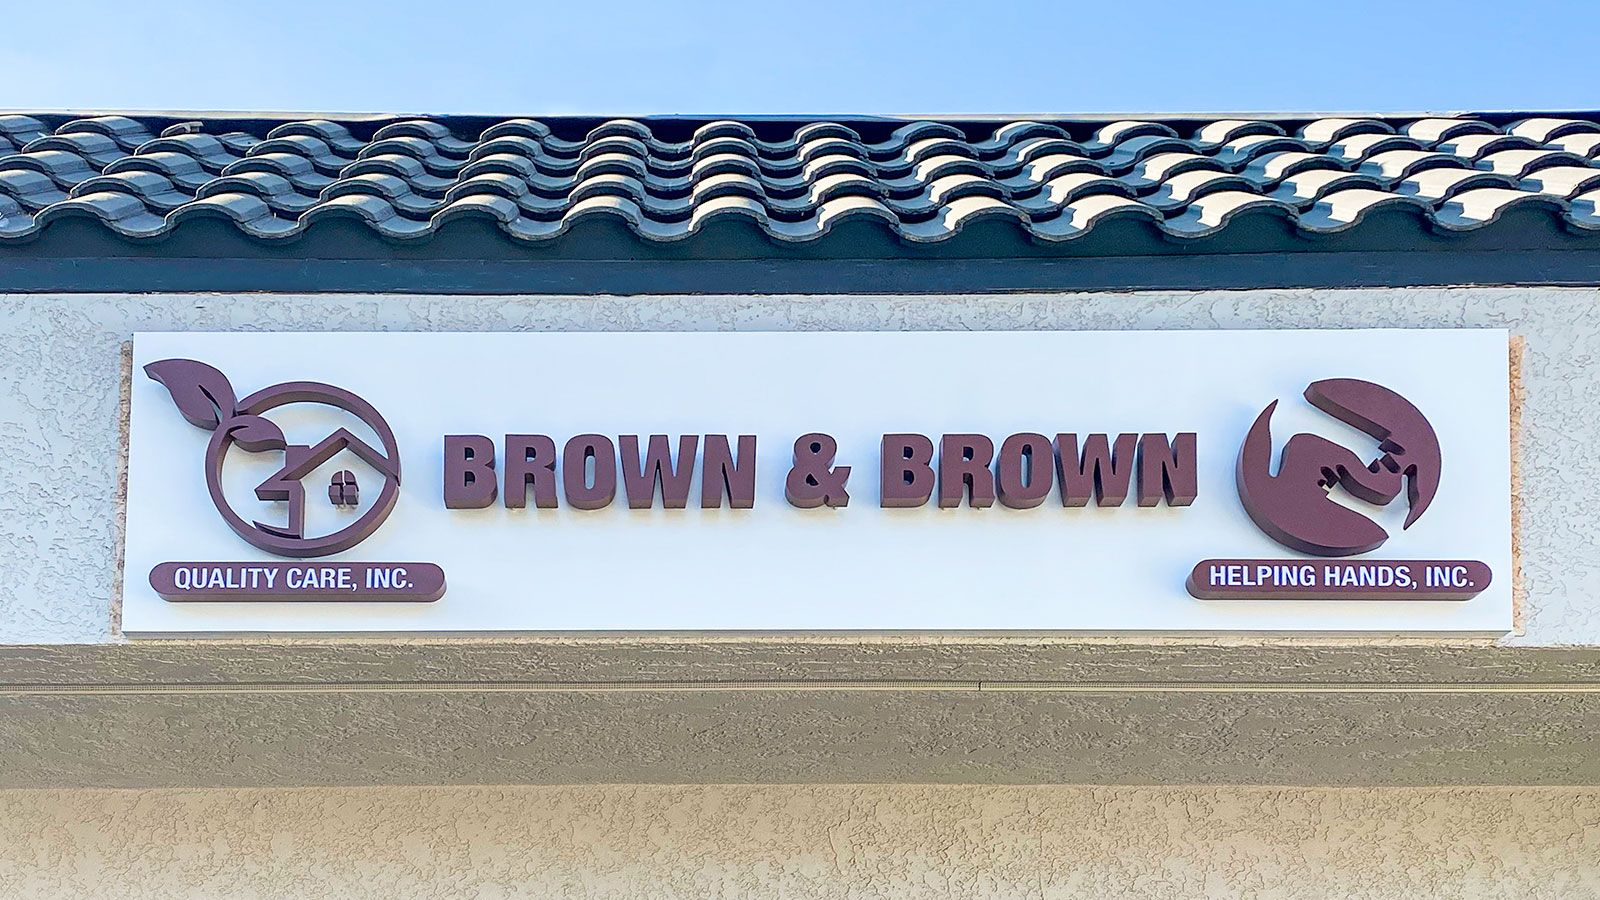 Brown & Brown 3d storefront sign displaying the name and logo of the company made of aluminum and acrylic for branding